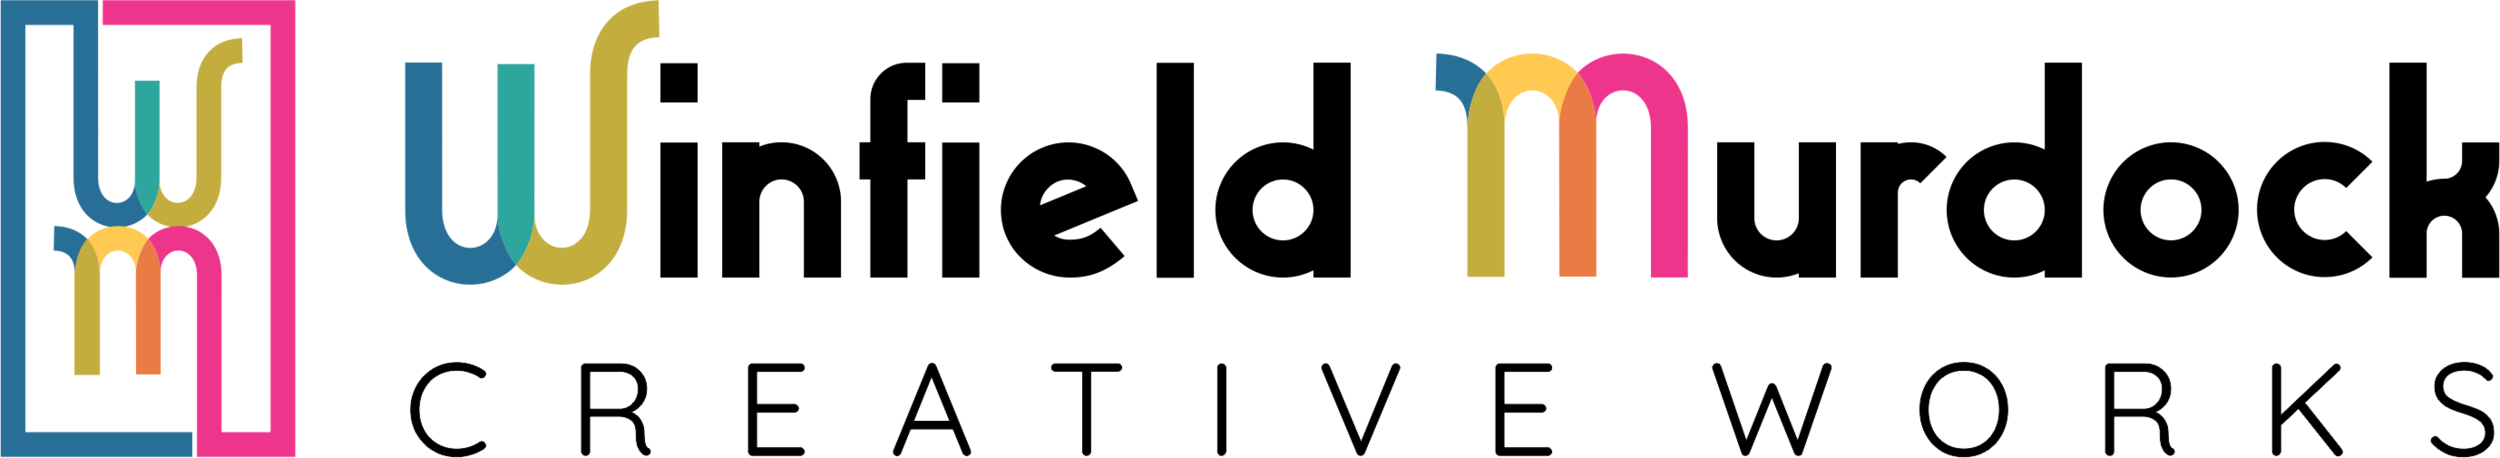 WMCW Color logo.png